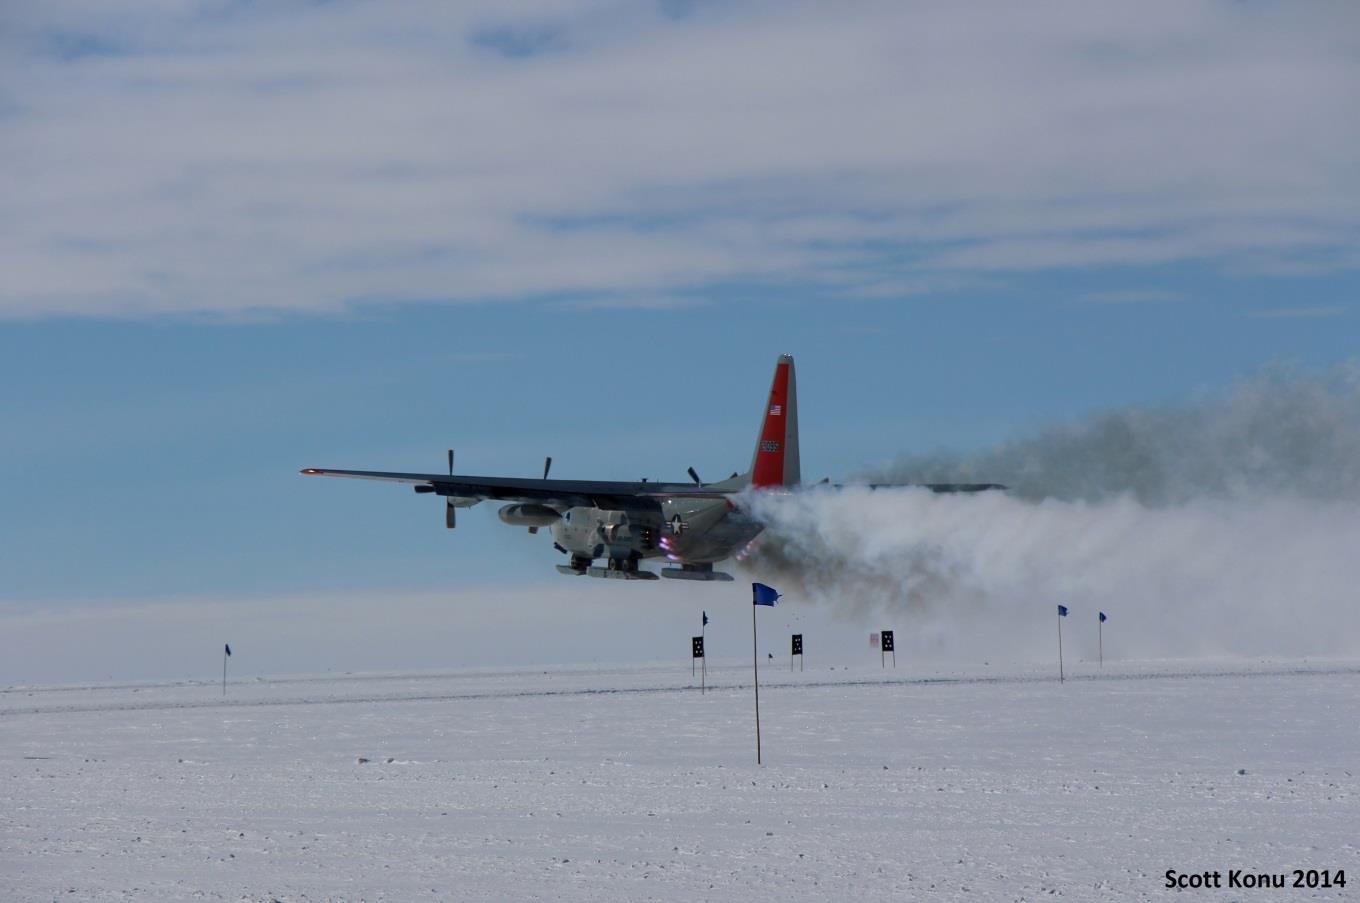 One of the first flights of the season takes off on Thursday May 8. Photo: Scott Konu